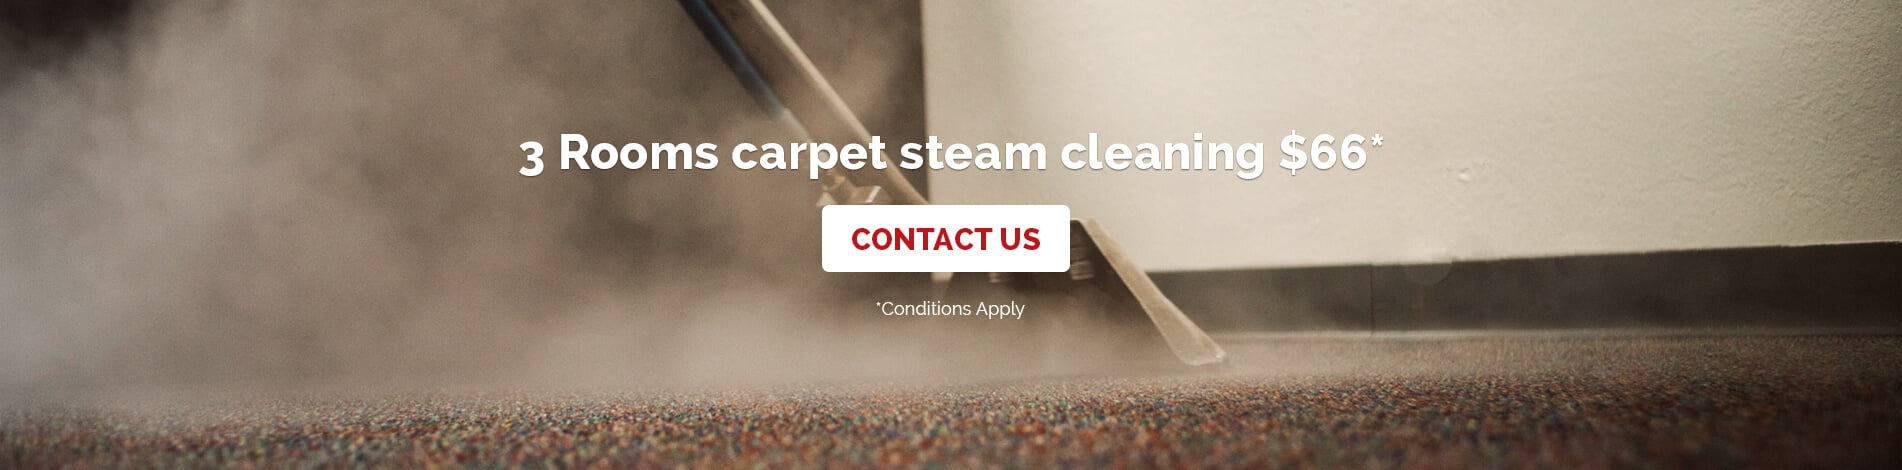 carpet cleaning and steam cleaning melbourne mcc. Black Bedroom Furniture Sets. Home Design Ideas